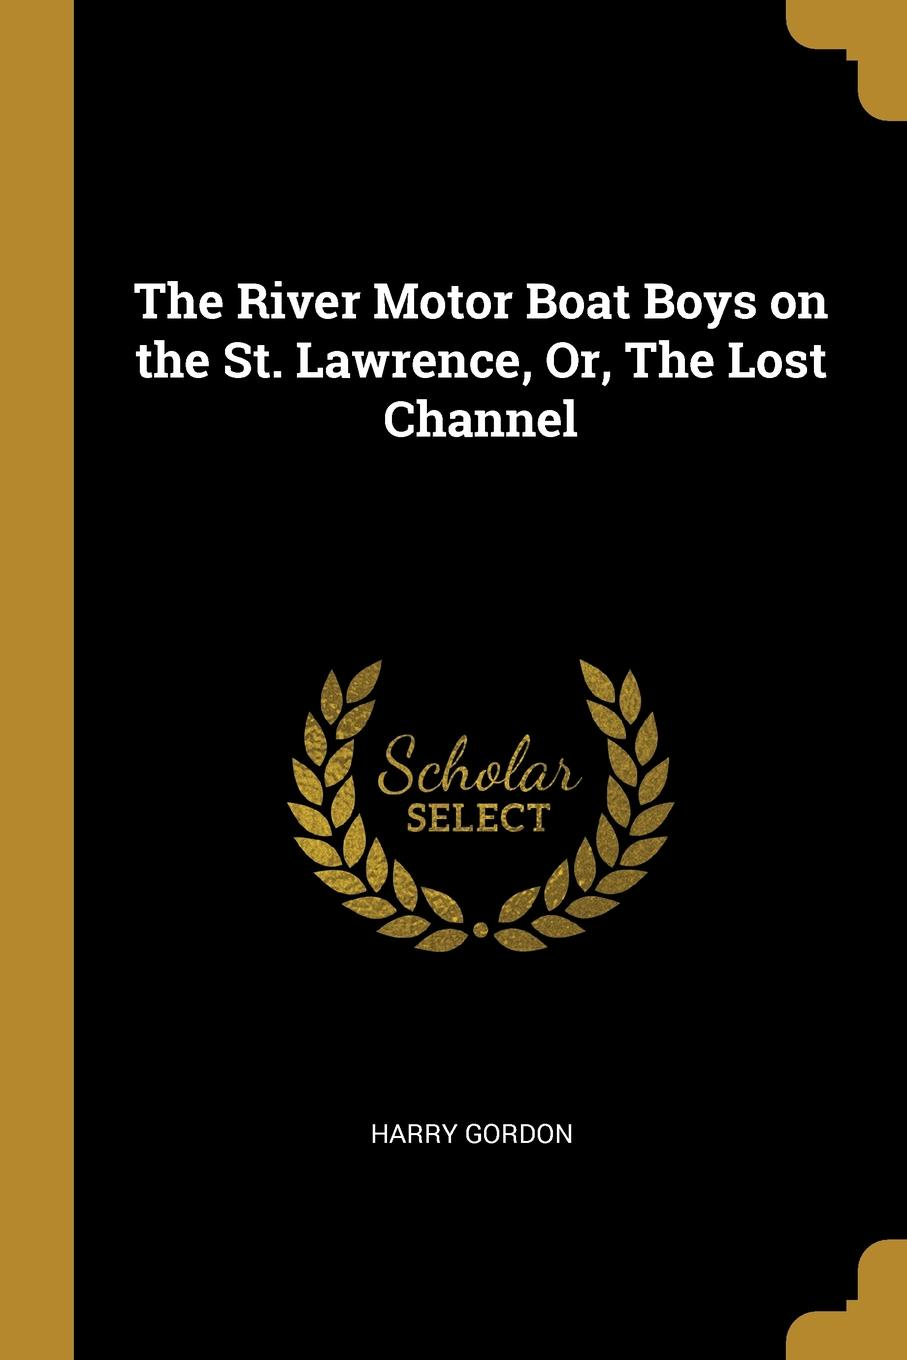 Harry Gordon The River Motor Boat Boys on the St. Lawrence, Or, The Lost Channel